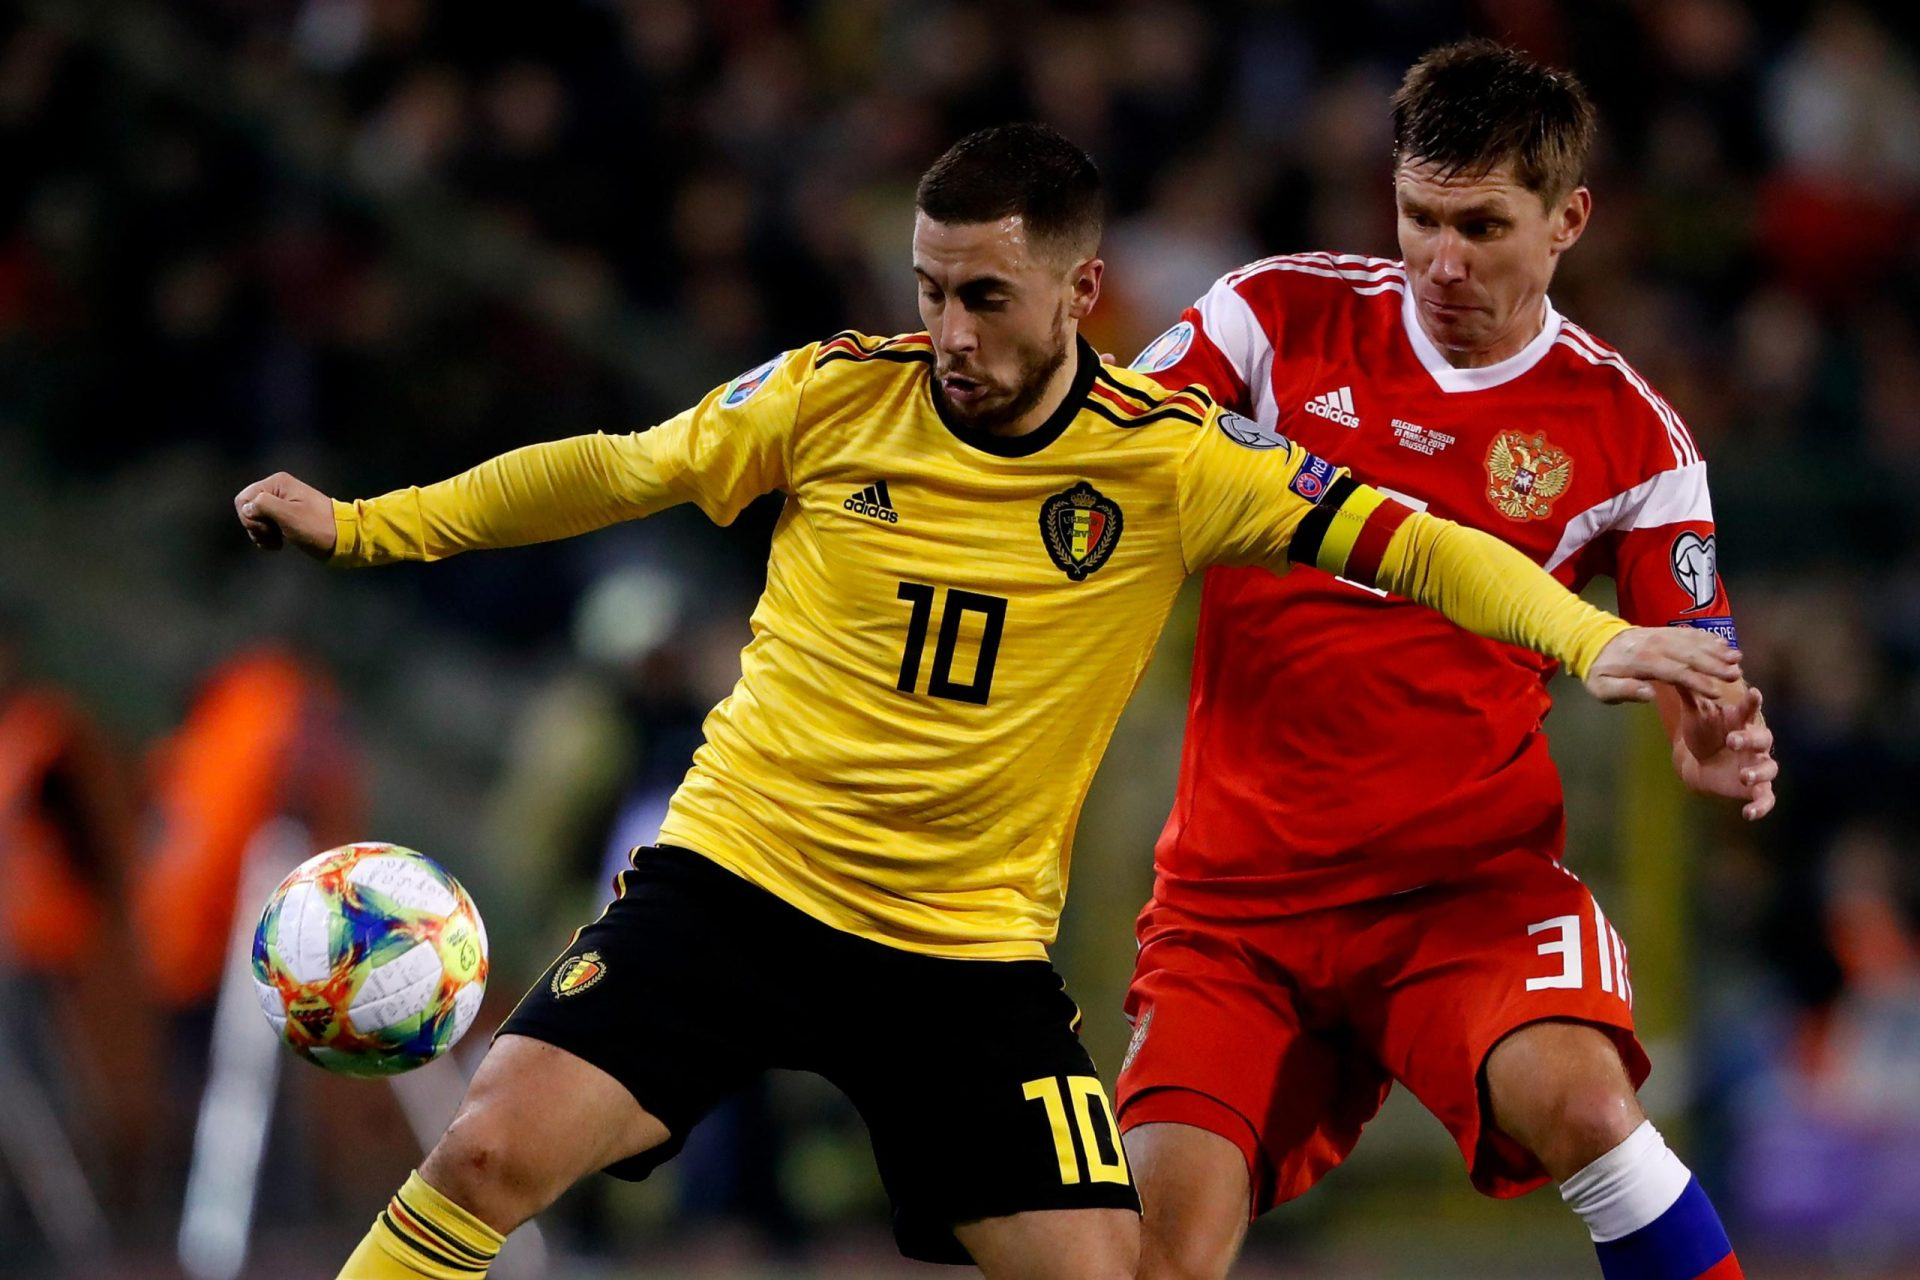 EURO 2020: Russia vs Belgium Odds, Predictions and Analysis - THE SPORTS ROOM